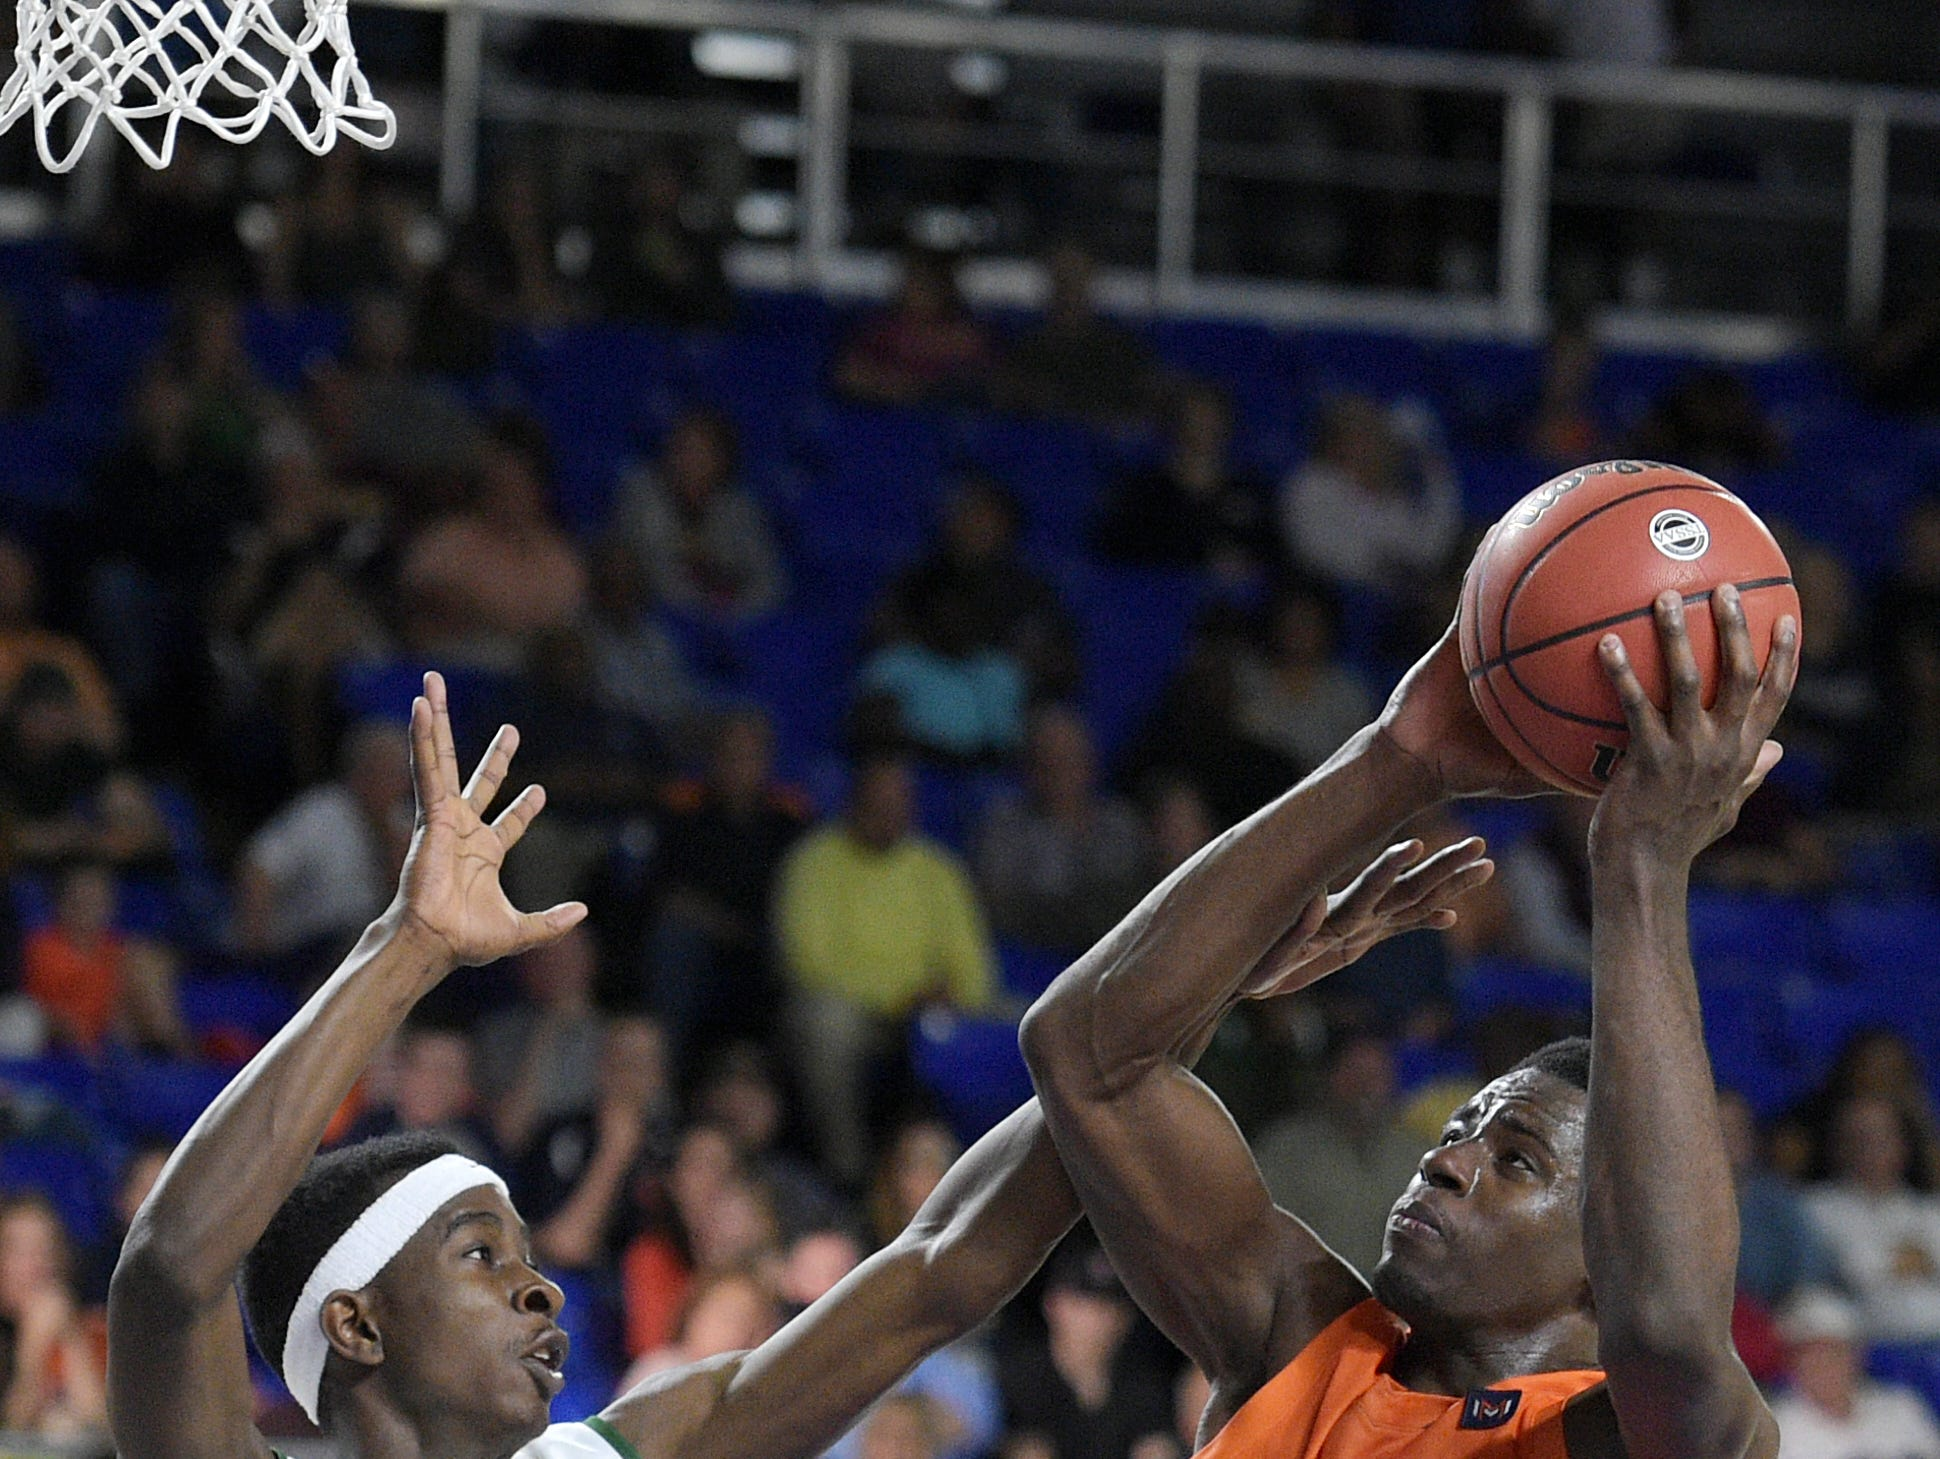 Nashville Christian's Daniel Bituli (35) scores against Booker T. Washington's Tyrone Sumlin (15) during the Boys Class A State quarterfinal game at MTSU's Murphy Center on Wednesday.